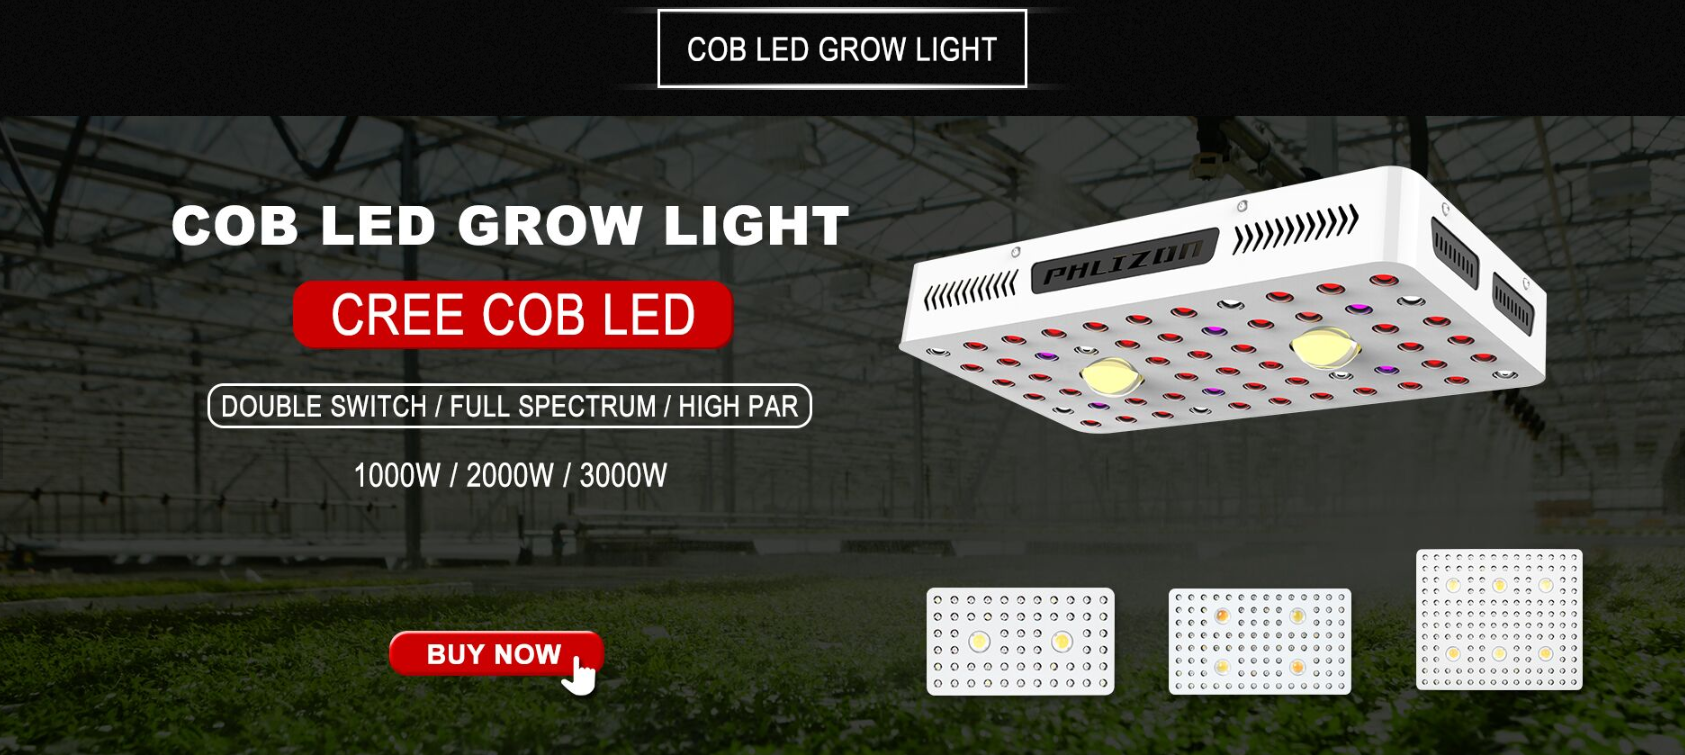 600W COB LED Grow Light